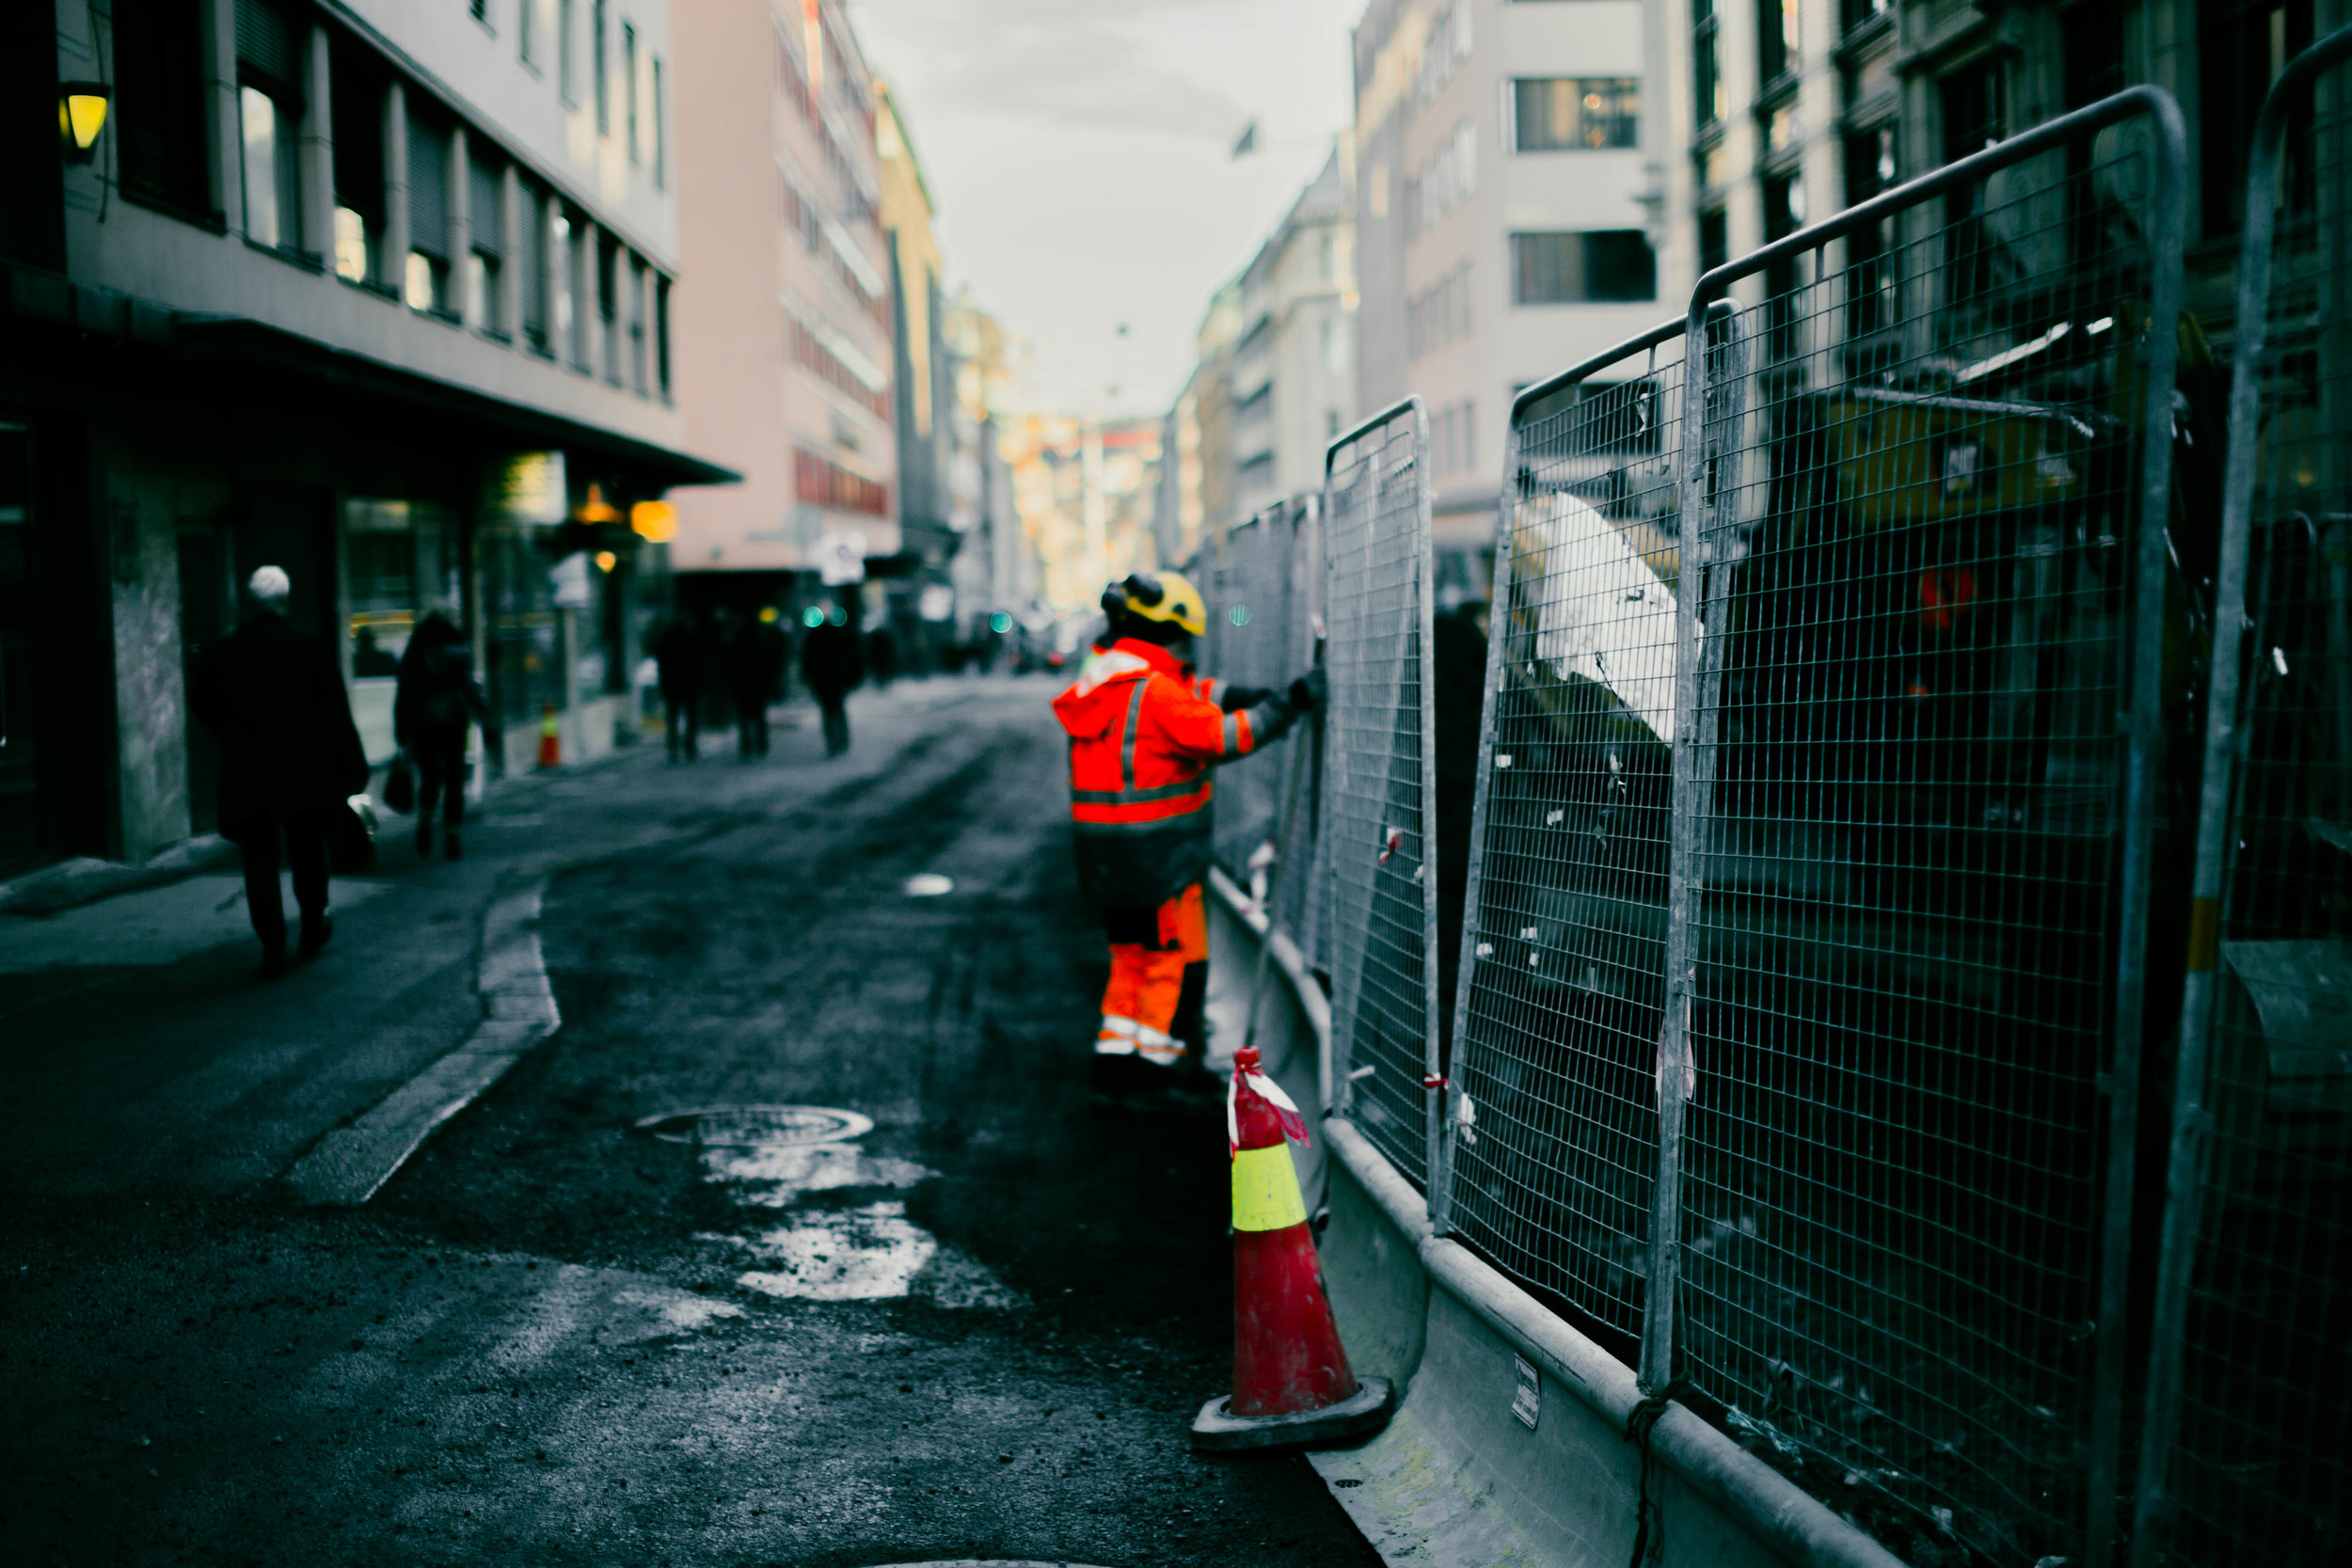 Oslo, Norway | March 2017